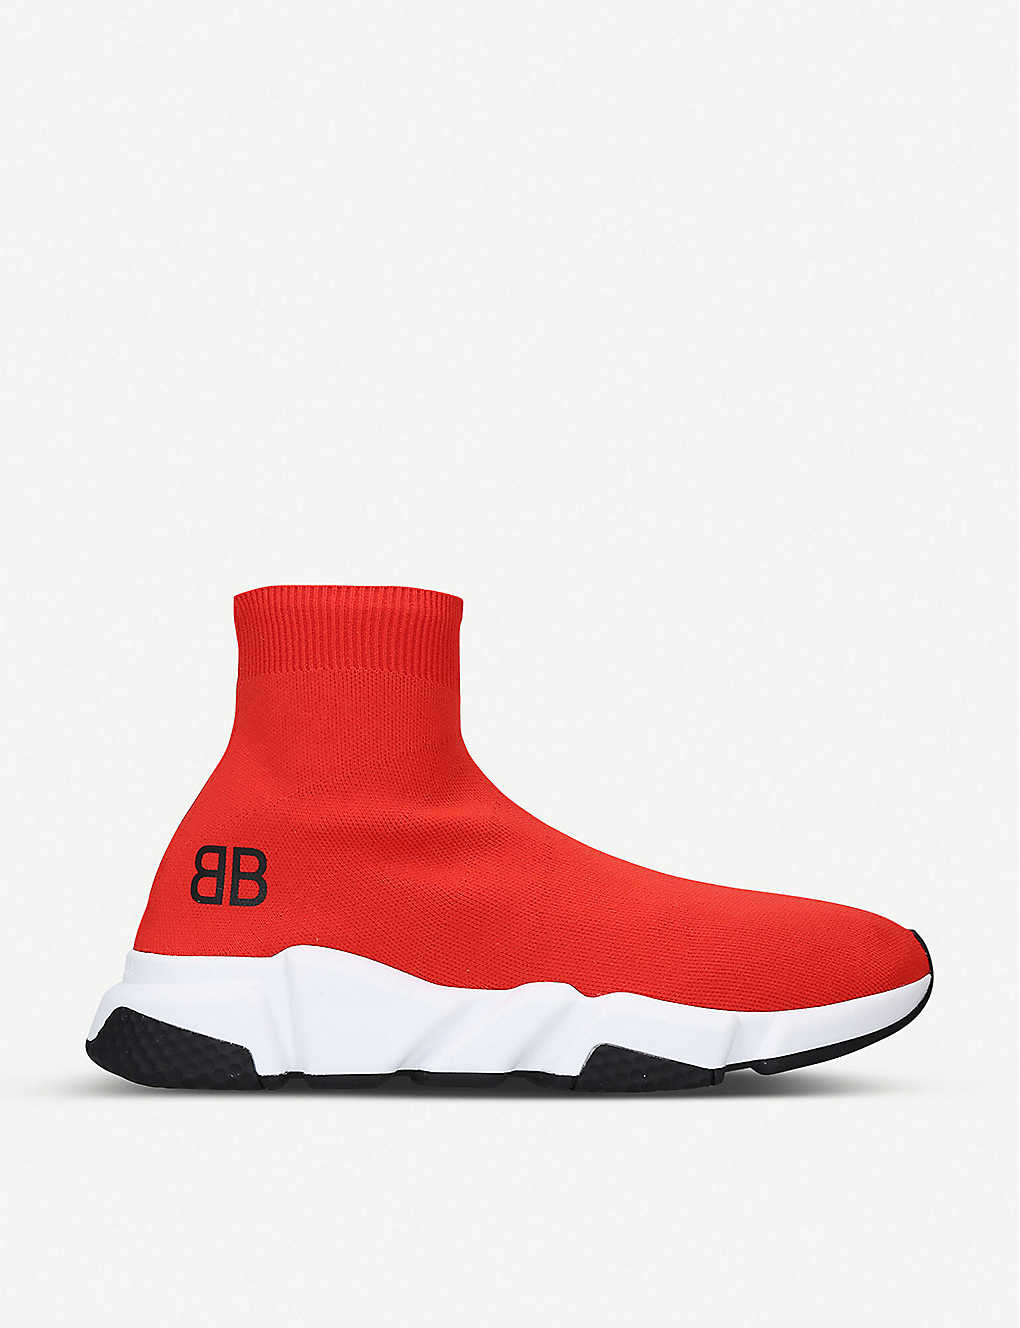 89637bbaefa1 Capsule BB Speed stretch-knit trainers - Red white black ...